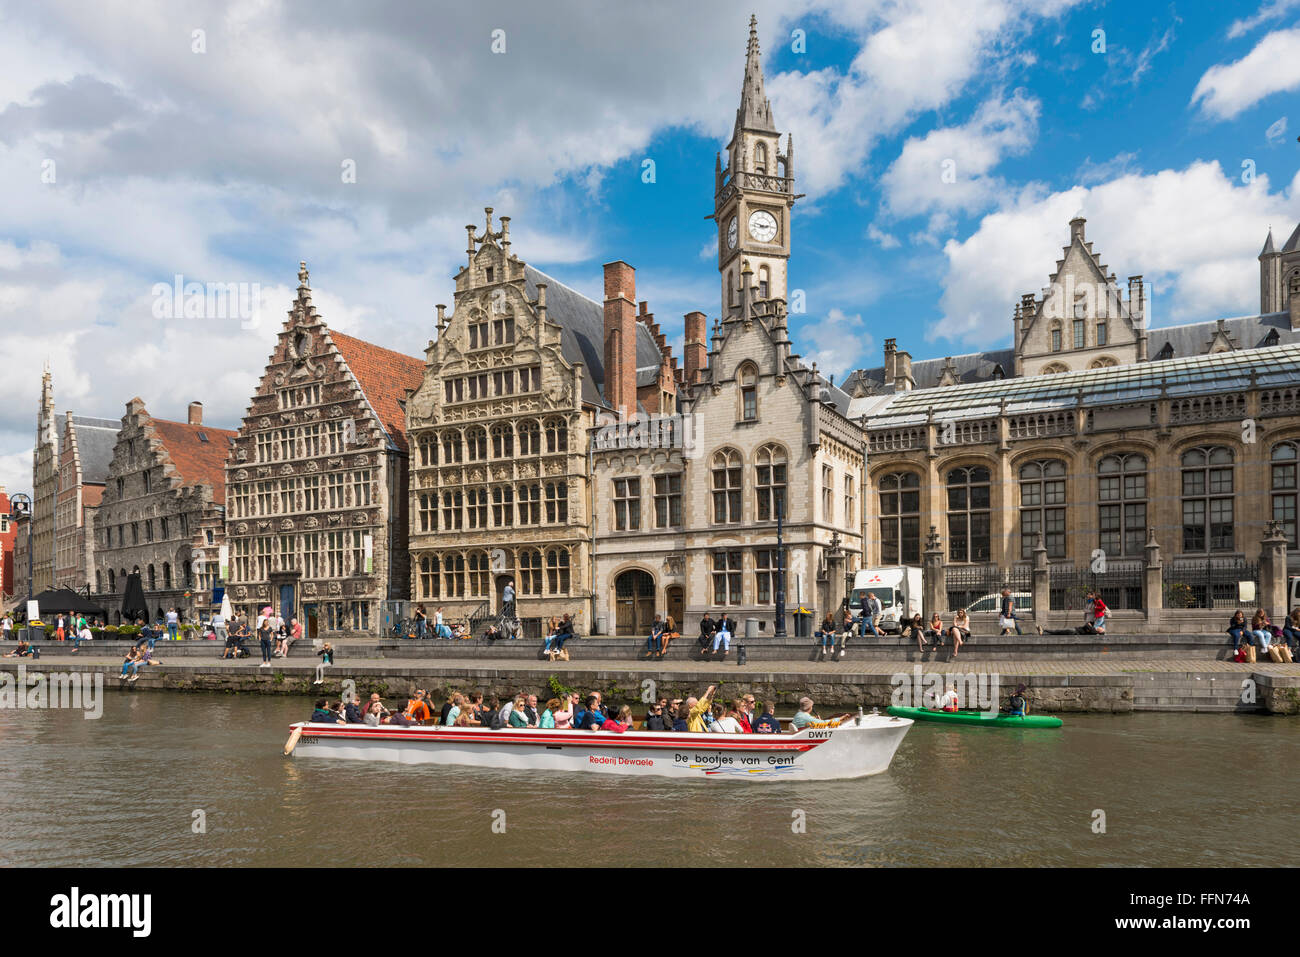 Ghent, Belgium - Sightseeing boat full of tourists on a trip on the river Leie in beautiful city of Ghent, Belgium, - Stock Image